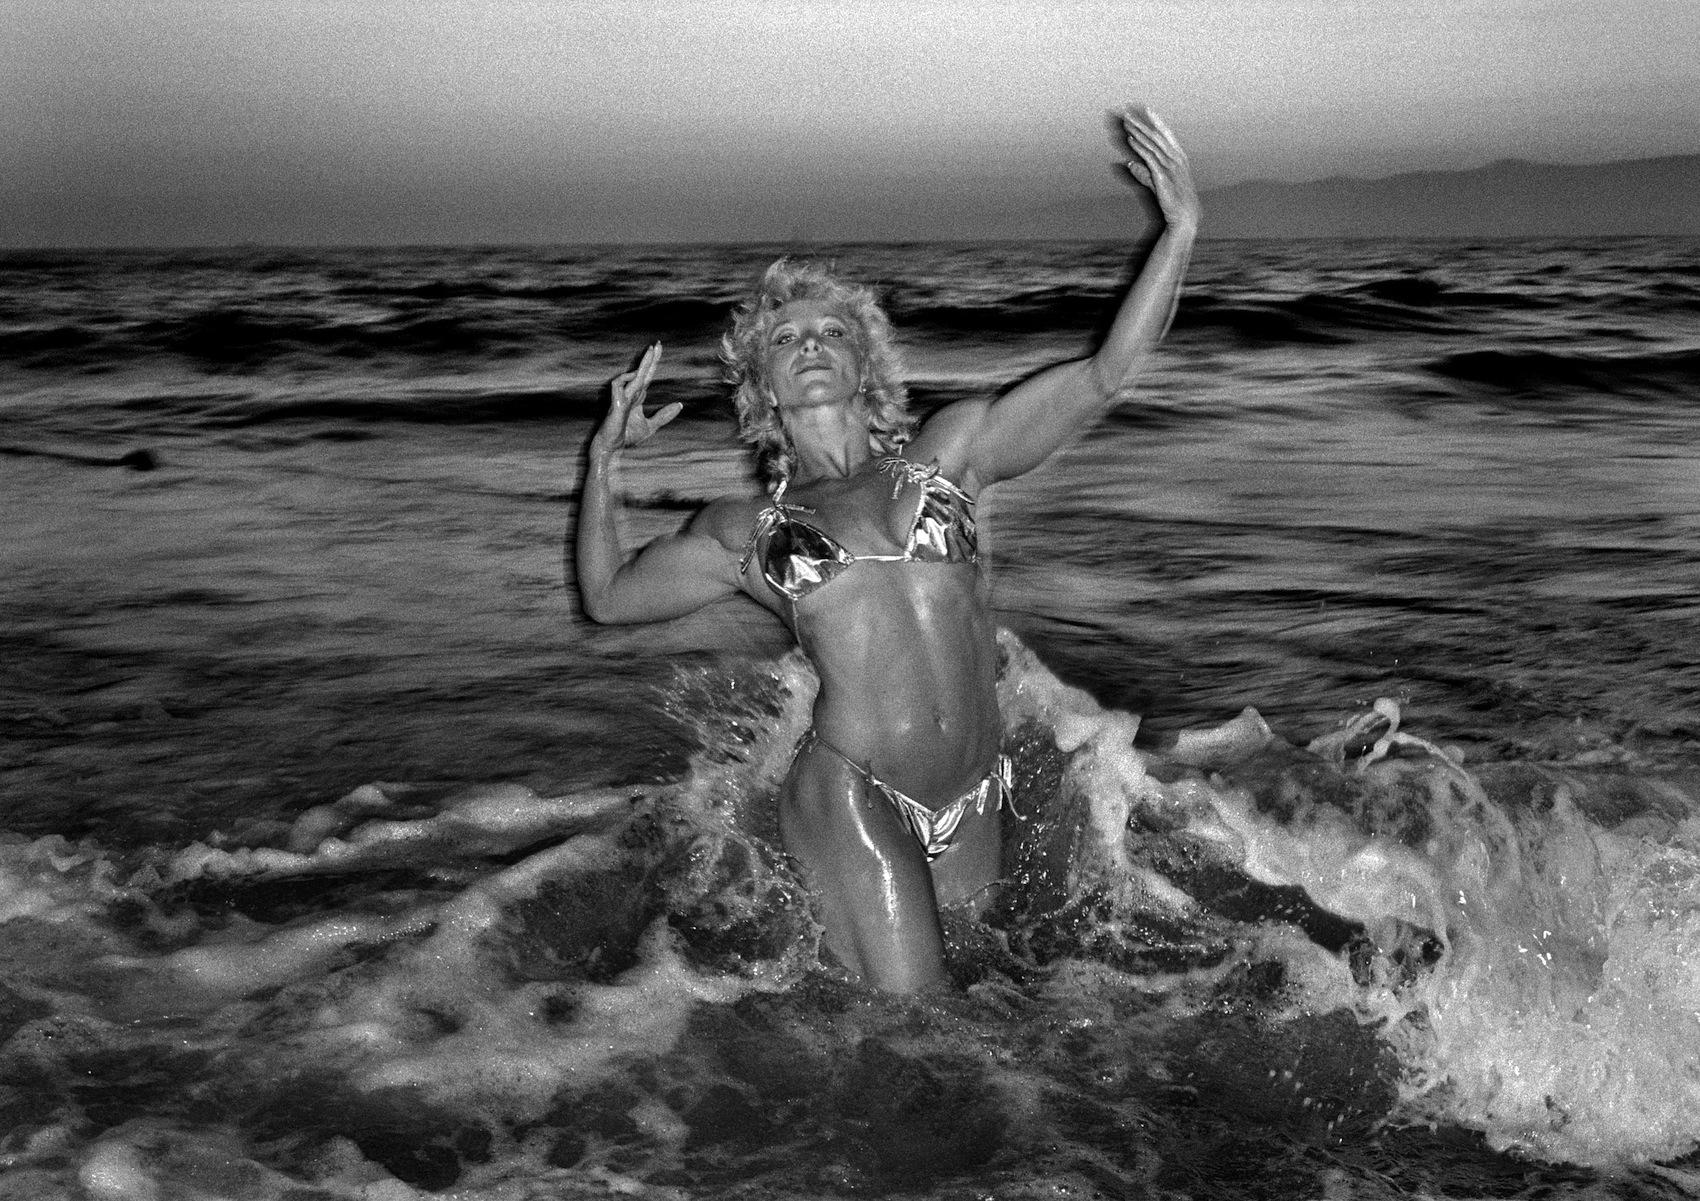 claudio-edinger-on-reuniting-with-the-venice-beach-eccentrics-he-photographed-over-30-years-ago-body-image-1470258103